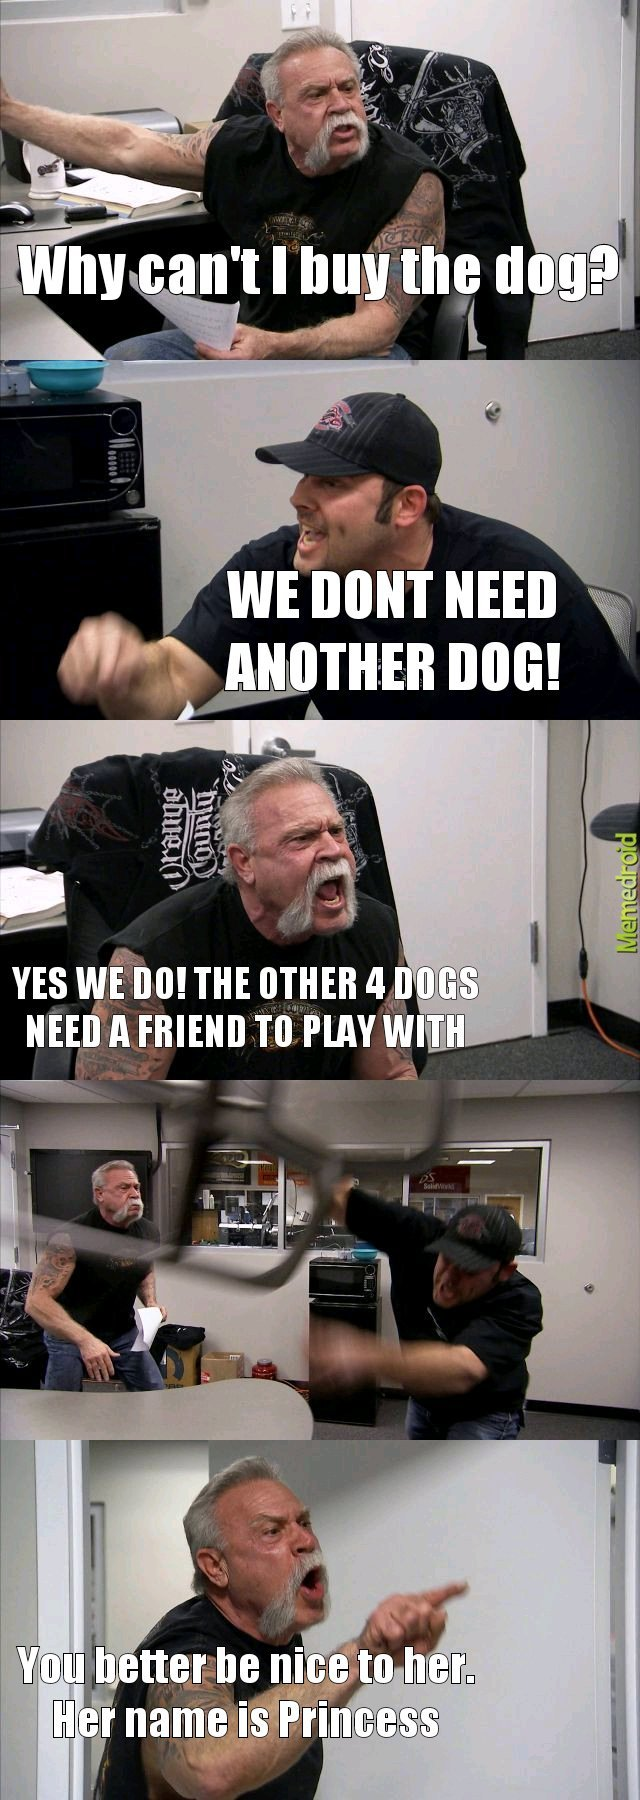 Another dog - meme